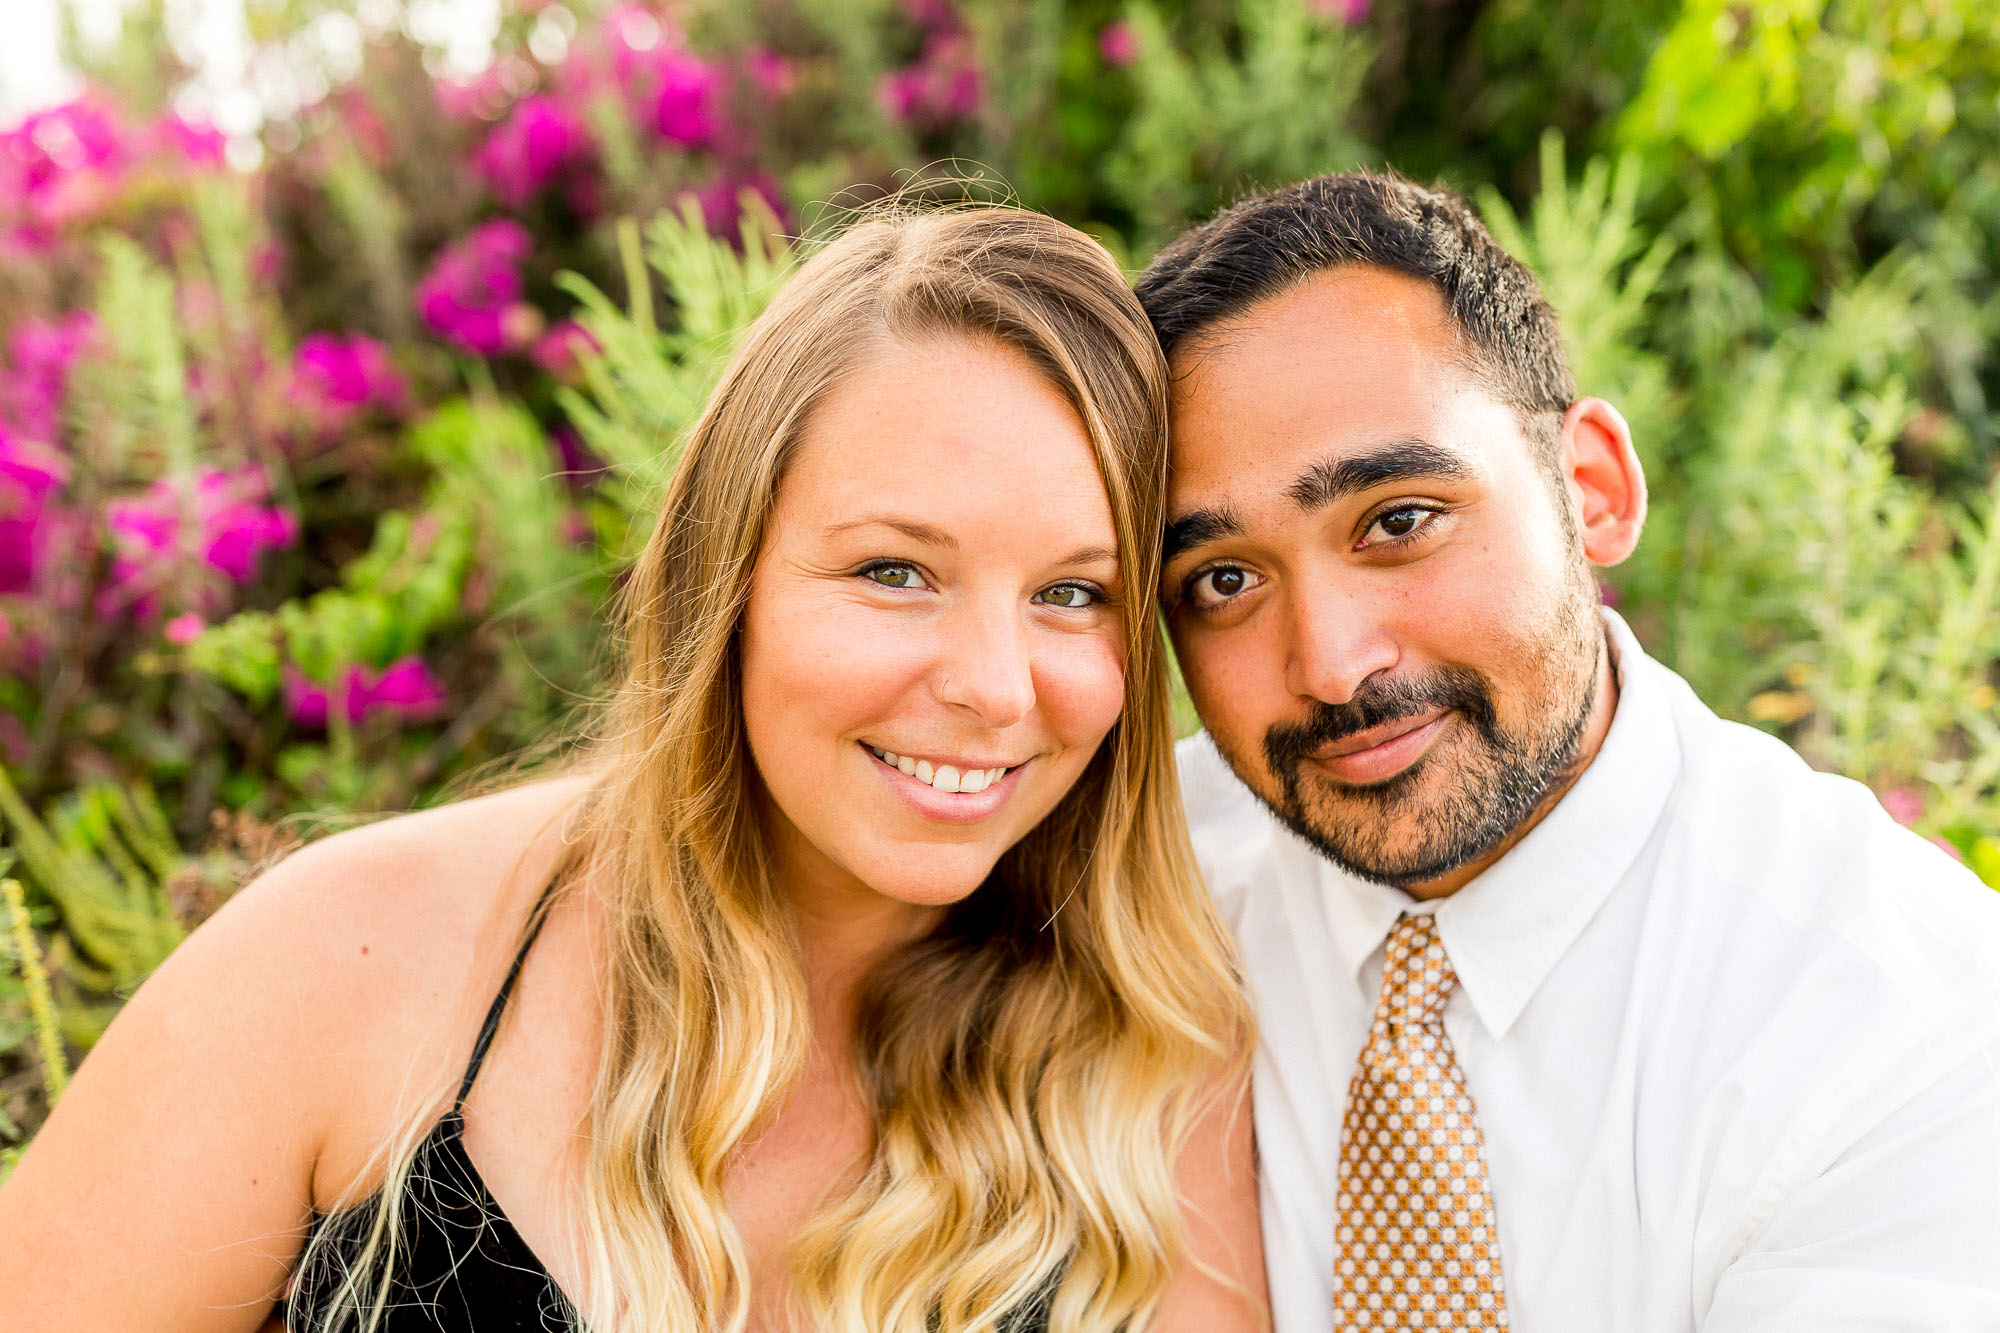 Justine_Puneet_Cardiff_Engagement_Session_056.jpg